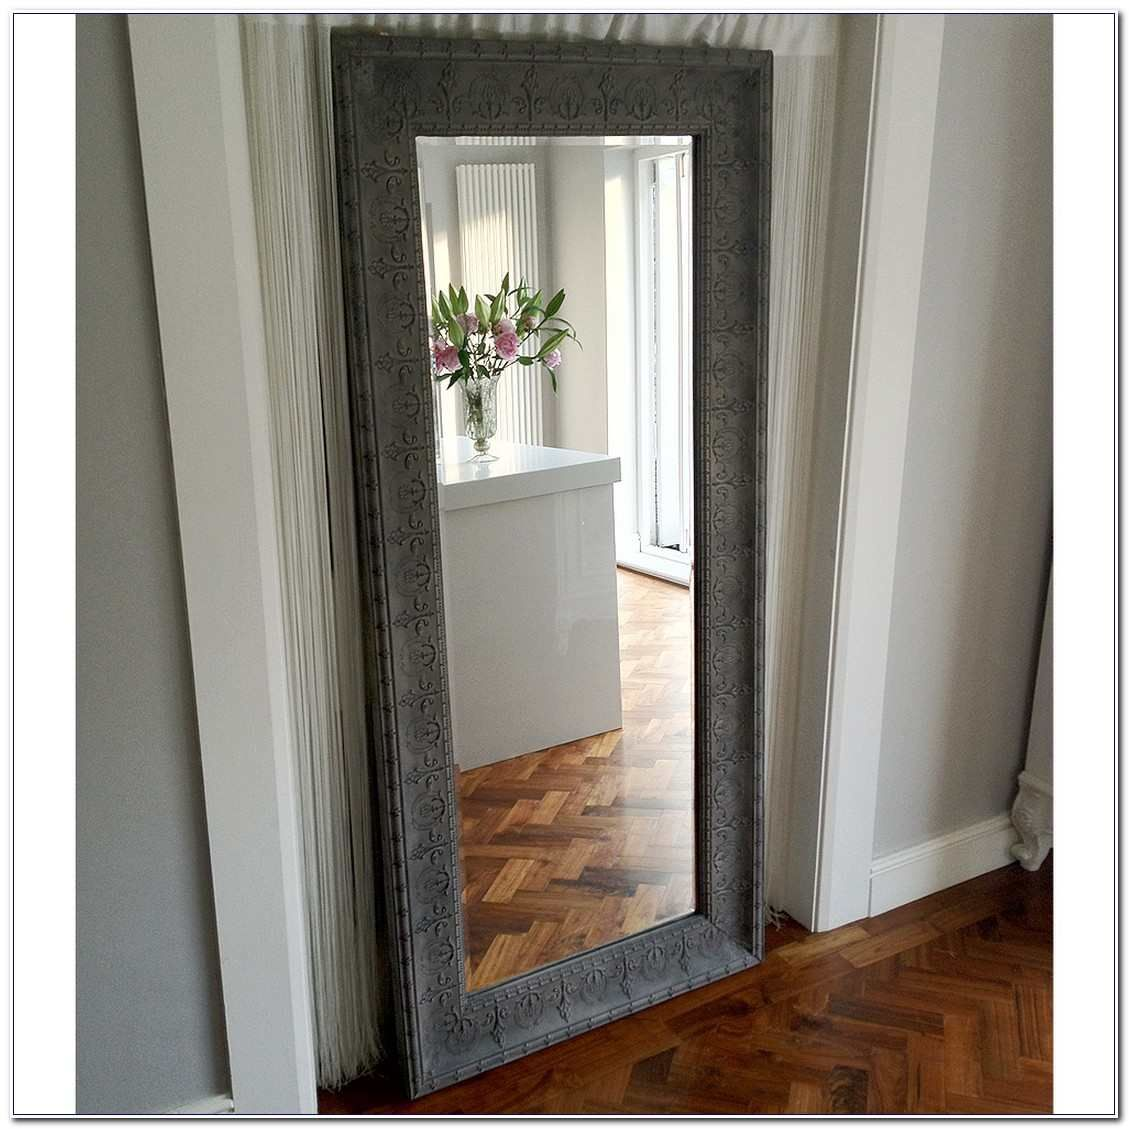 Stand Up Mirrors For Bedroom Full Length Mirror Freestanding